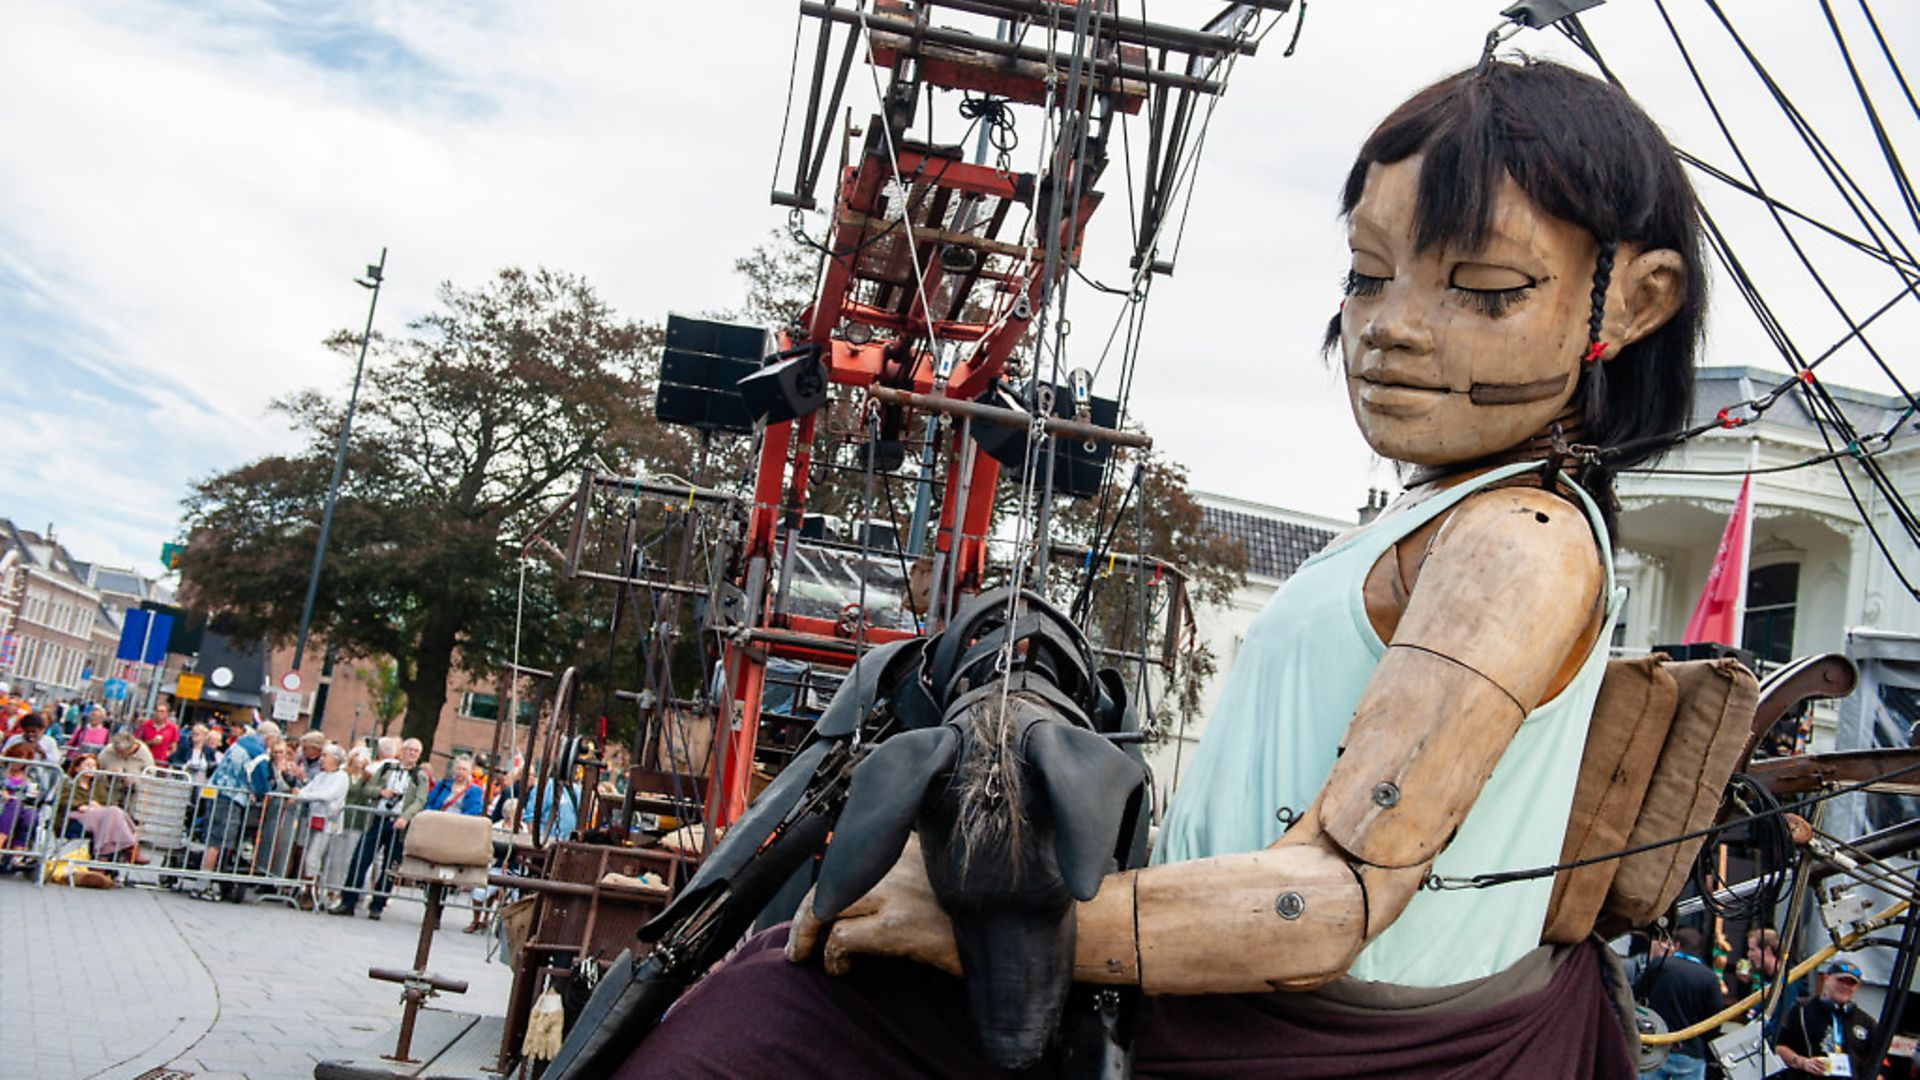 An animated marionette of French street theatre company Royal de Luxe parades through the streets in the European Capital of Culture 2018, Leeuwarden, The Netherlands (Photo by Romy Arroyo Fernandez/NurPhoto via Getty Images) - Credit: NurPhoto via Getty Images